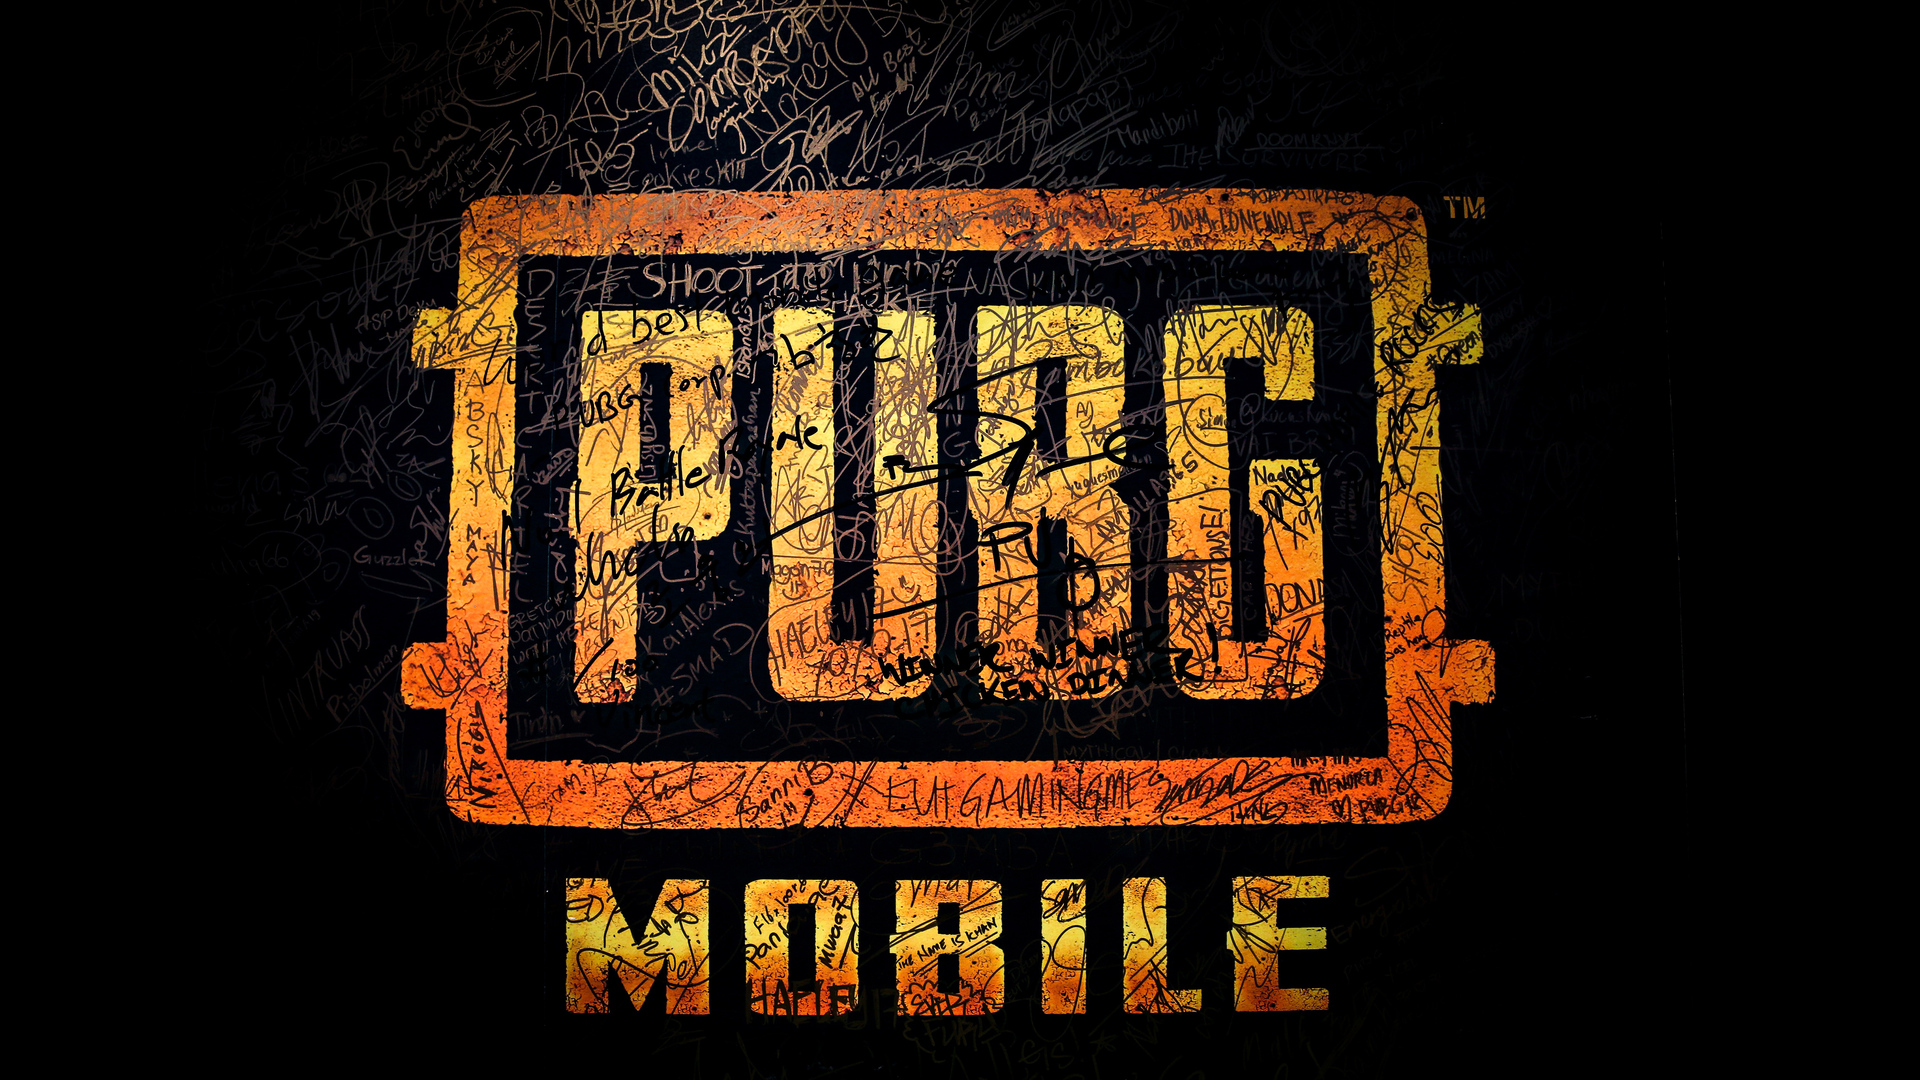 Download Pubg Jump Wallpapers To Your Cell Phone: 1280x2120 Pubg Game Girl Fanart Iphone 6 Hd 4k Wallpapers